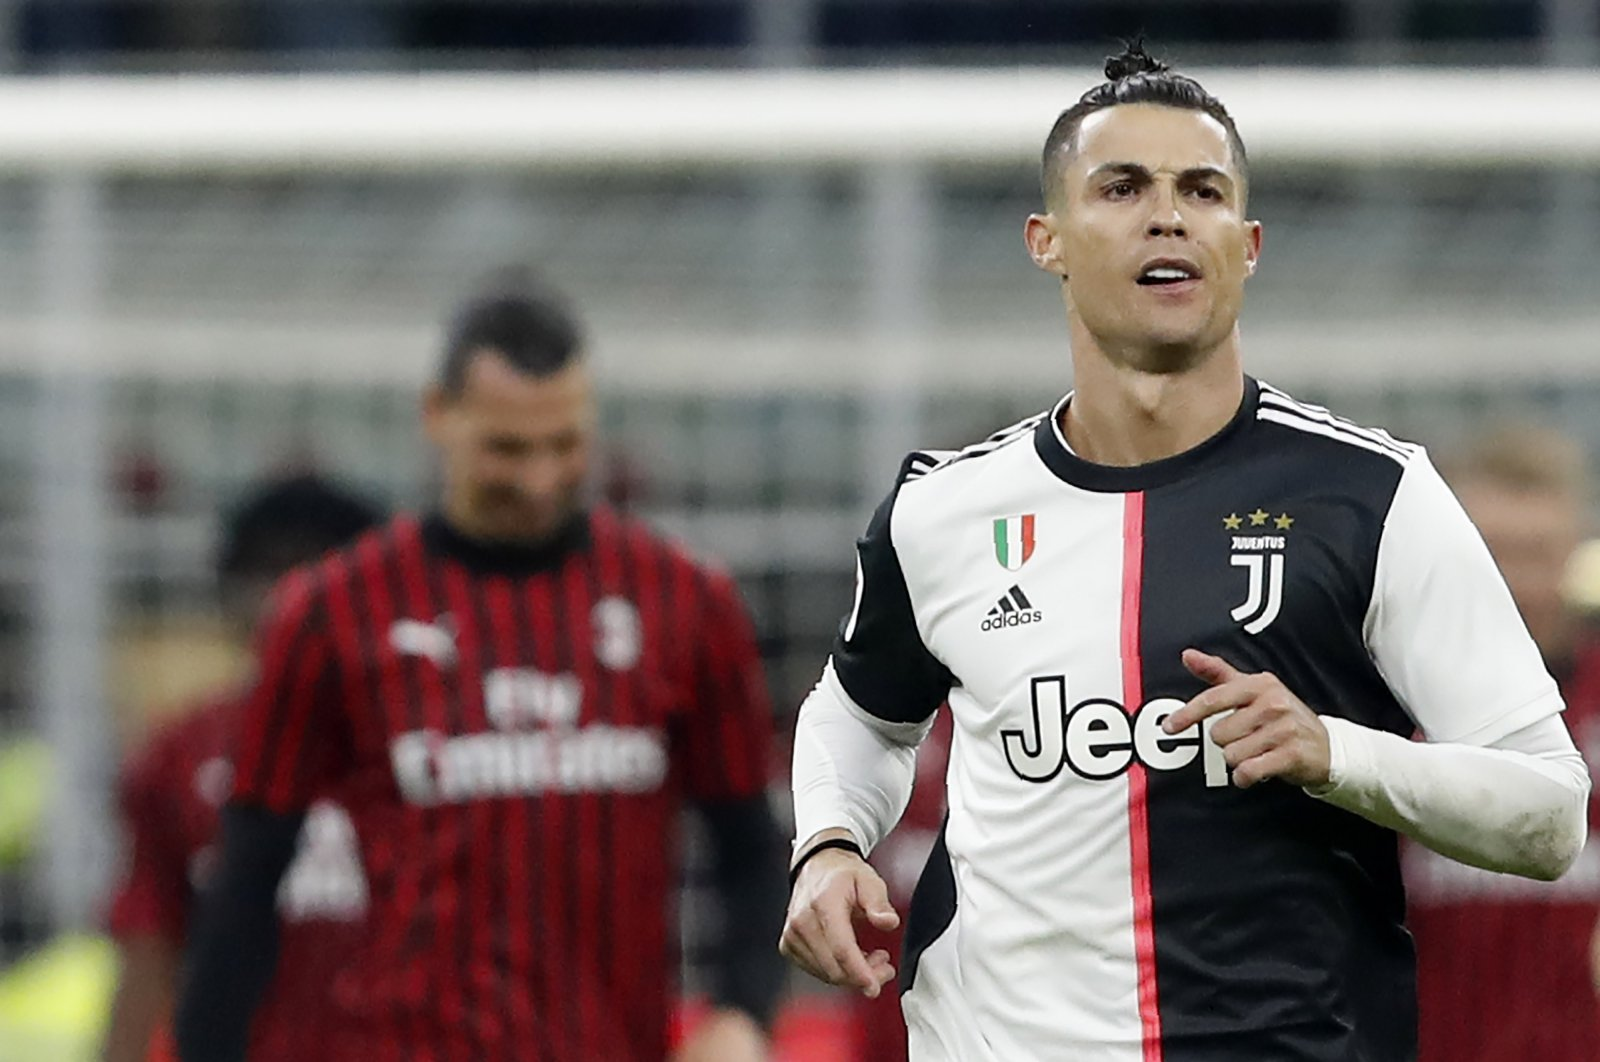 Juventus' Cristiano Ronaldo celebrates after scoring a penalty against AC Milan during an Italian Cup match in Milan, Italy, Feb. 13, 2020. (AP Photo)